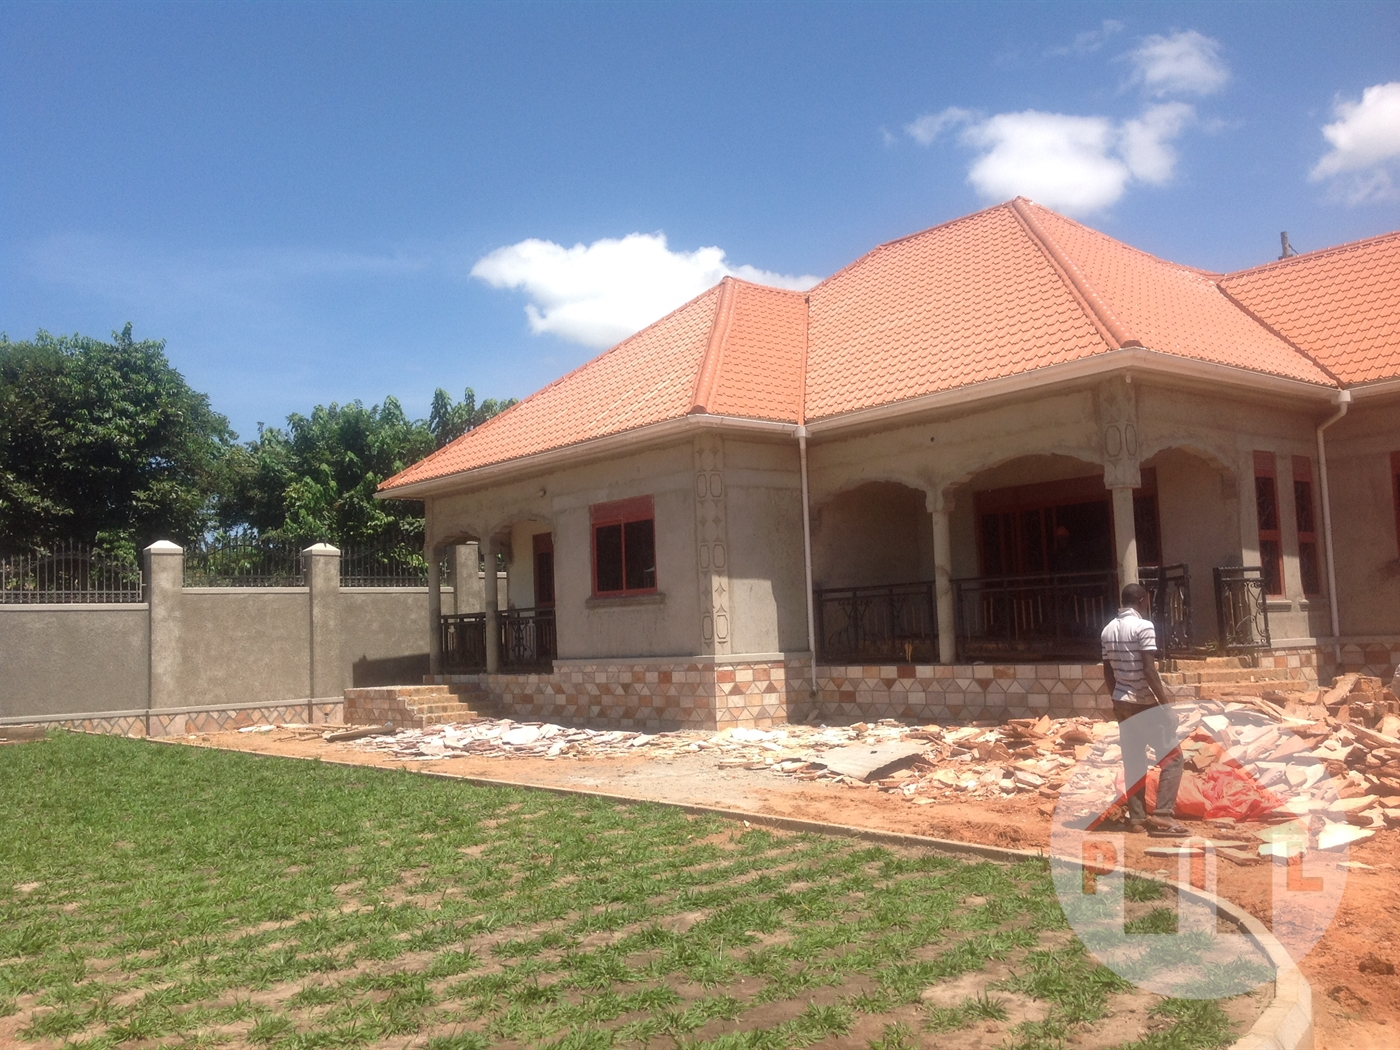 Shell house for sale in kyengera wakiso front view main image